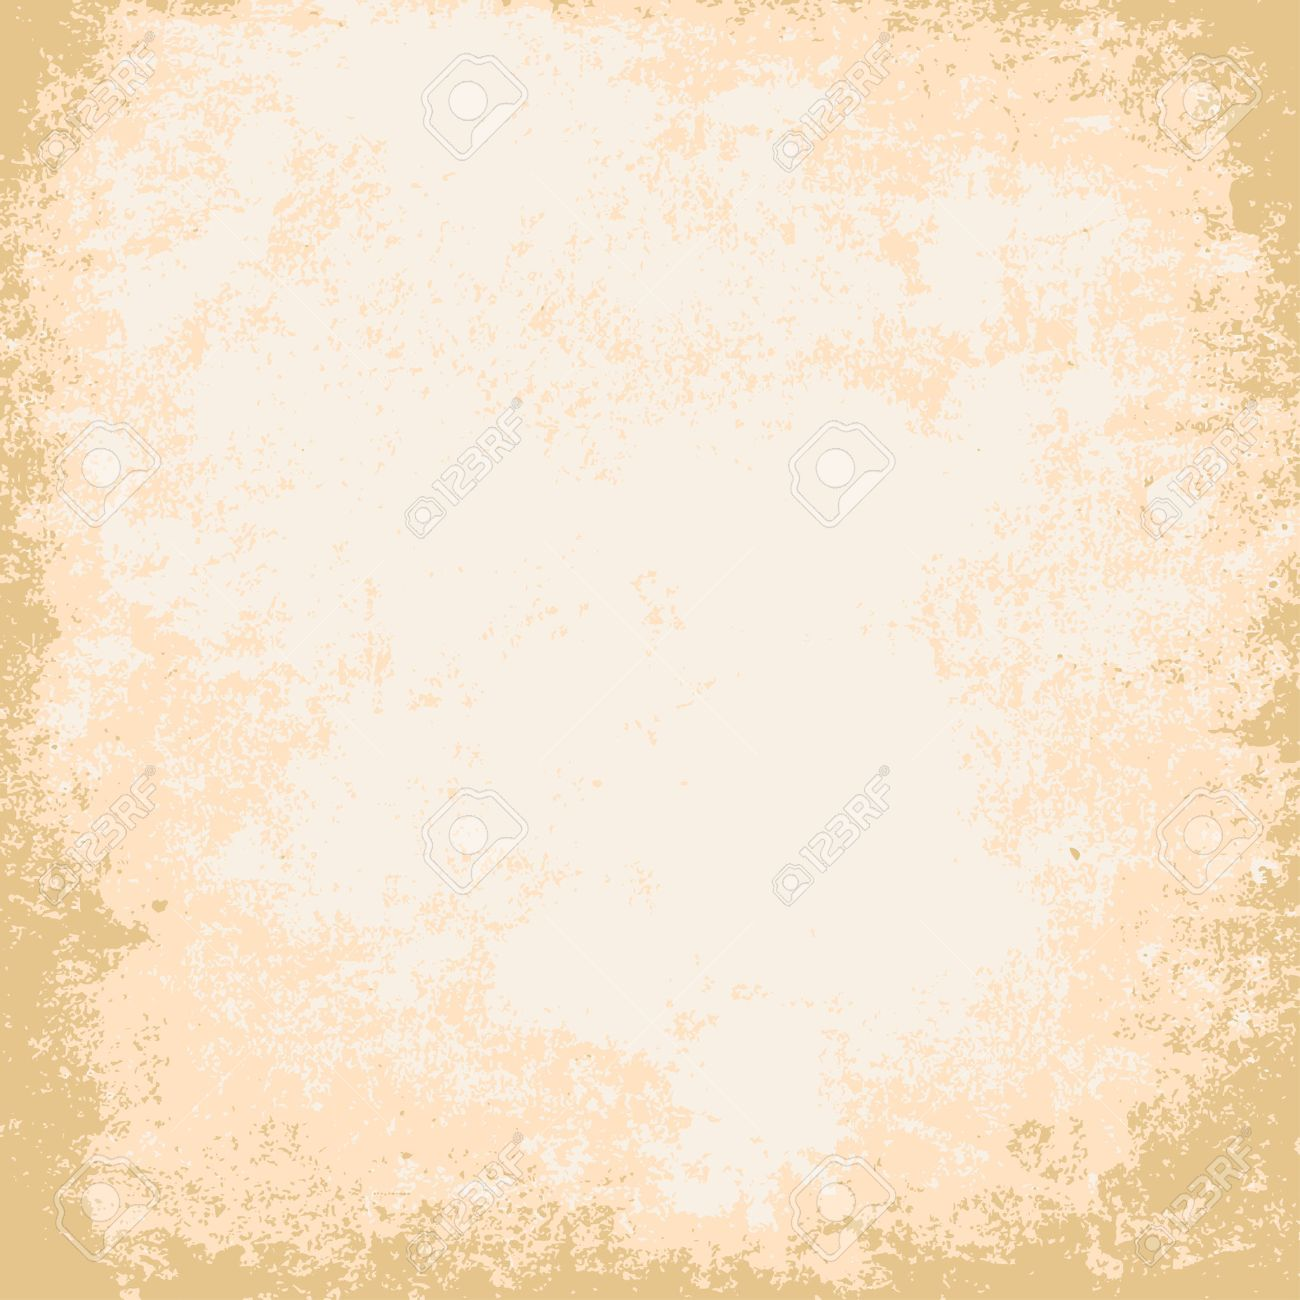 Vintage paper or parchment background Stock Vector - 43401737